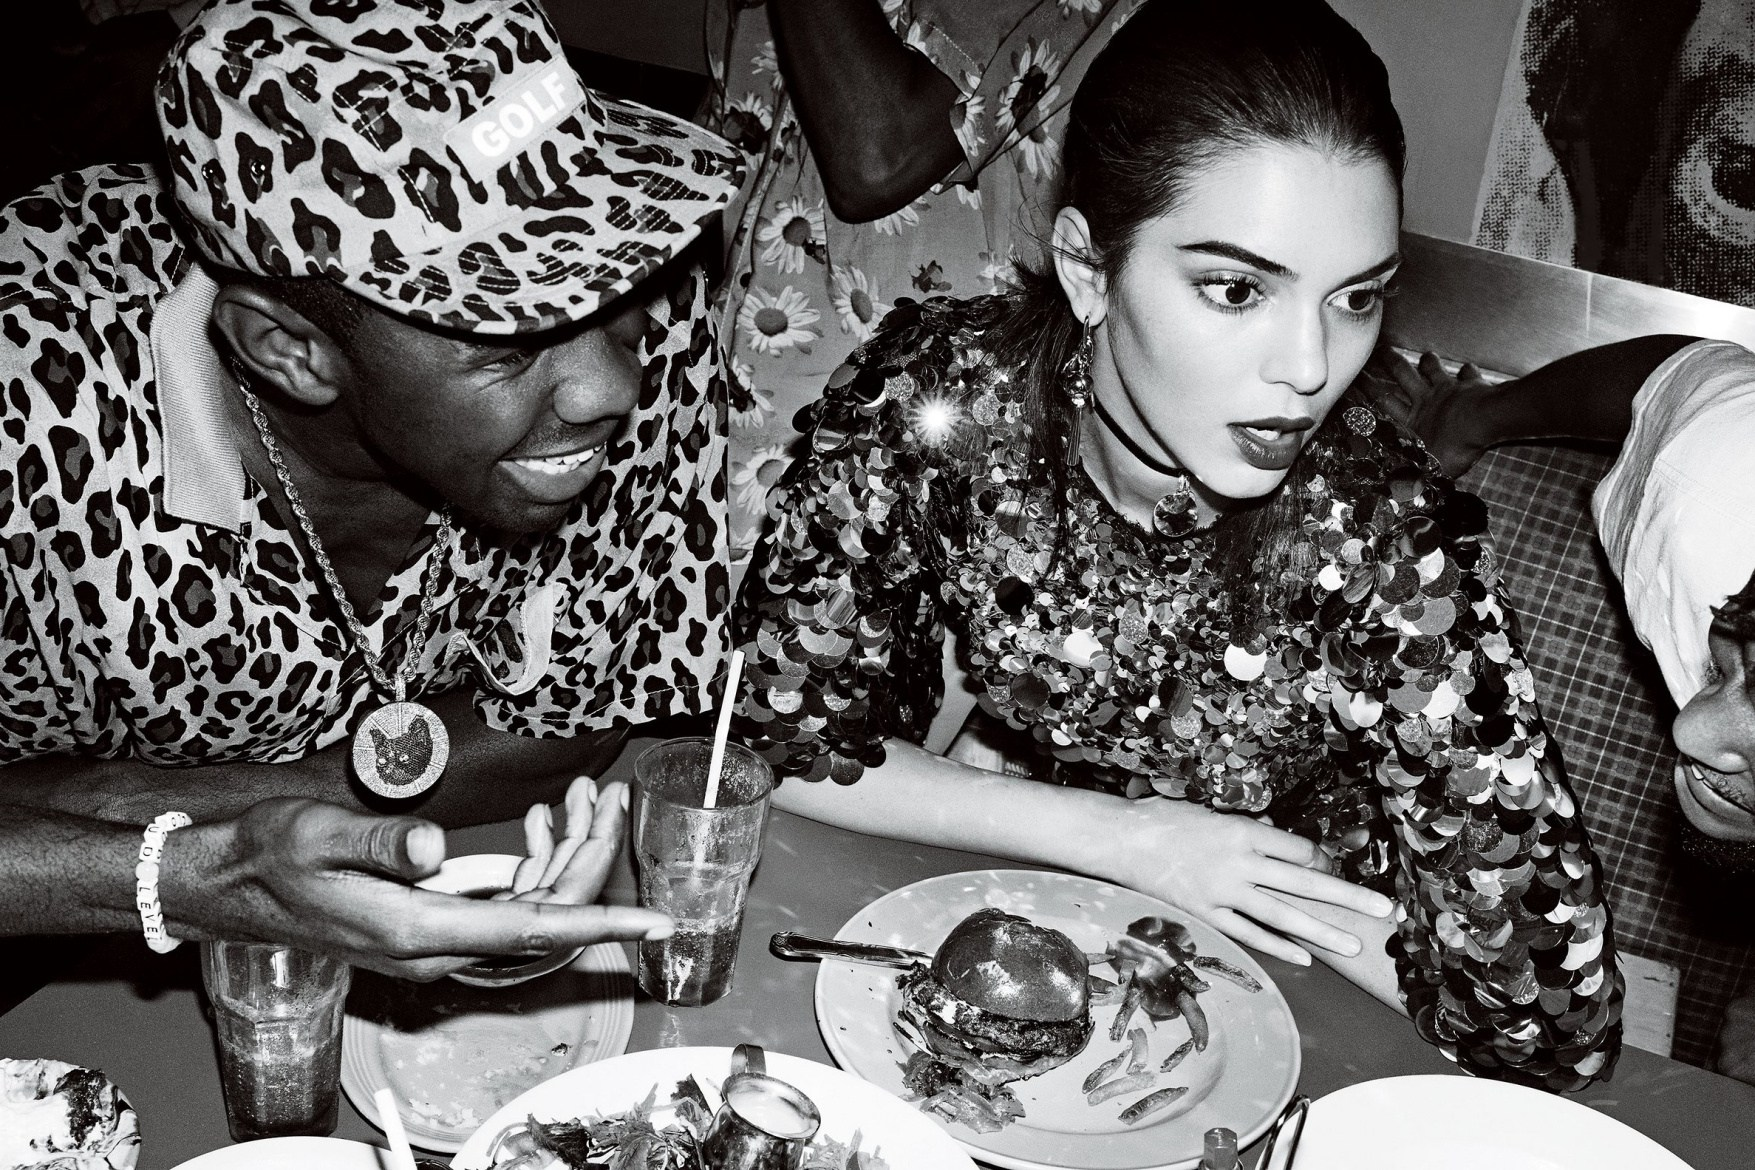 kendall-jenner-tyler-the-creator-vogue-2017-january-2